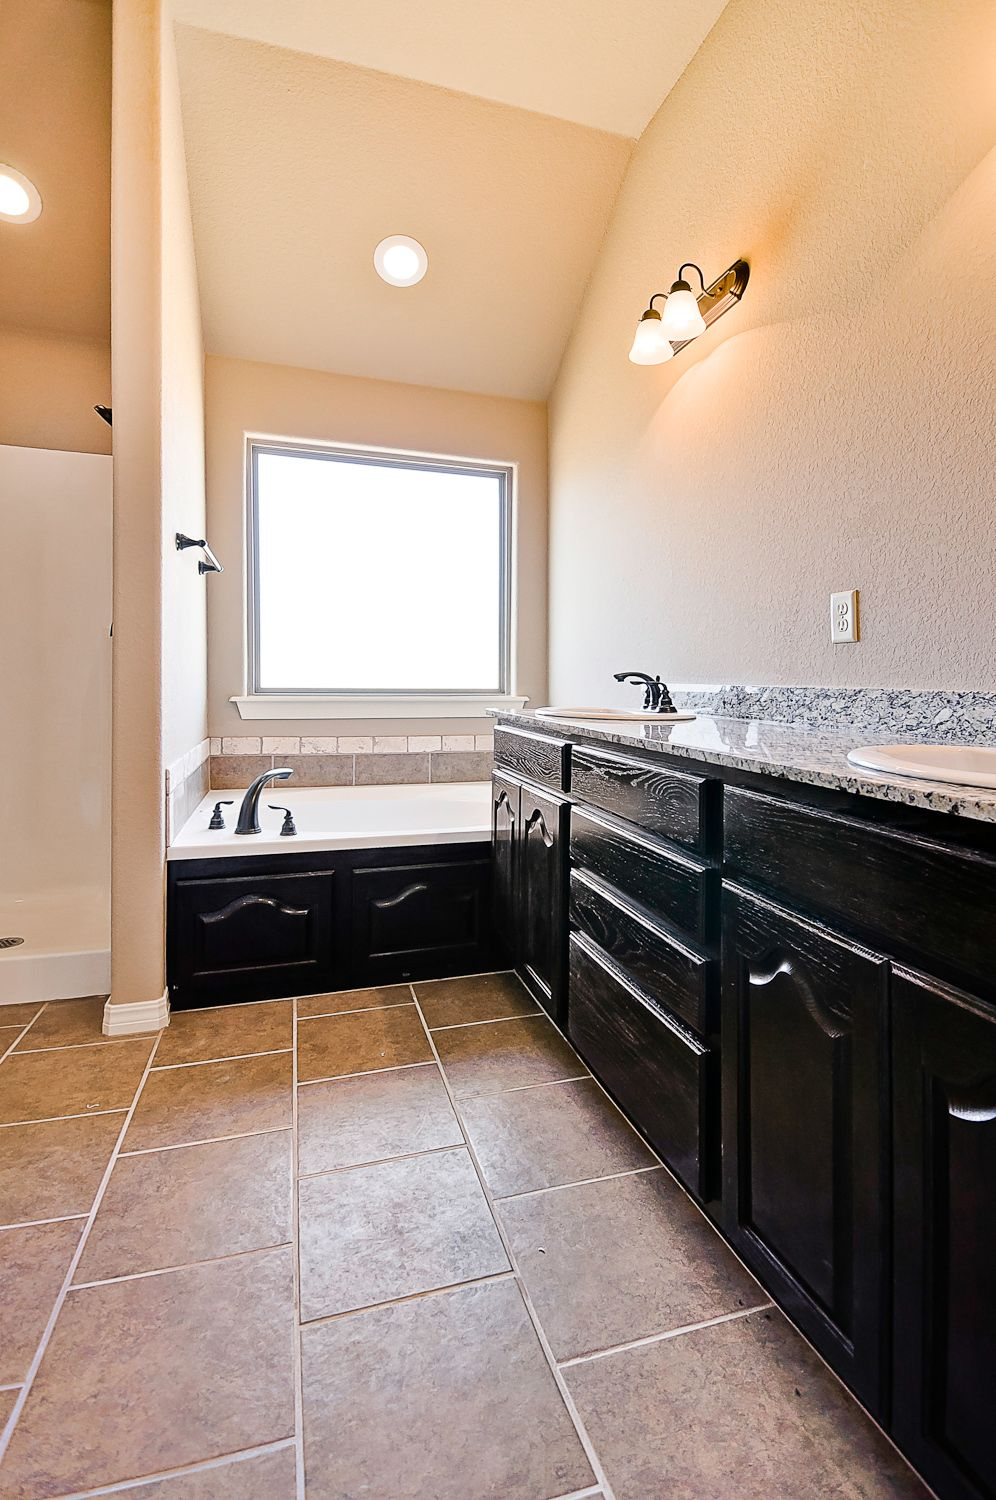 Bathroom featured in the Dogwood 1471 By Riverwood Homes - Arkansas in Fayetteville, AR